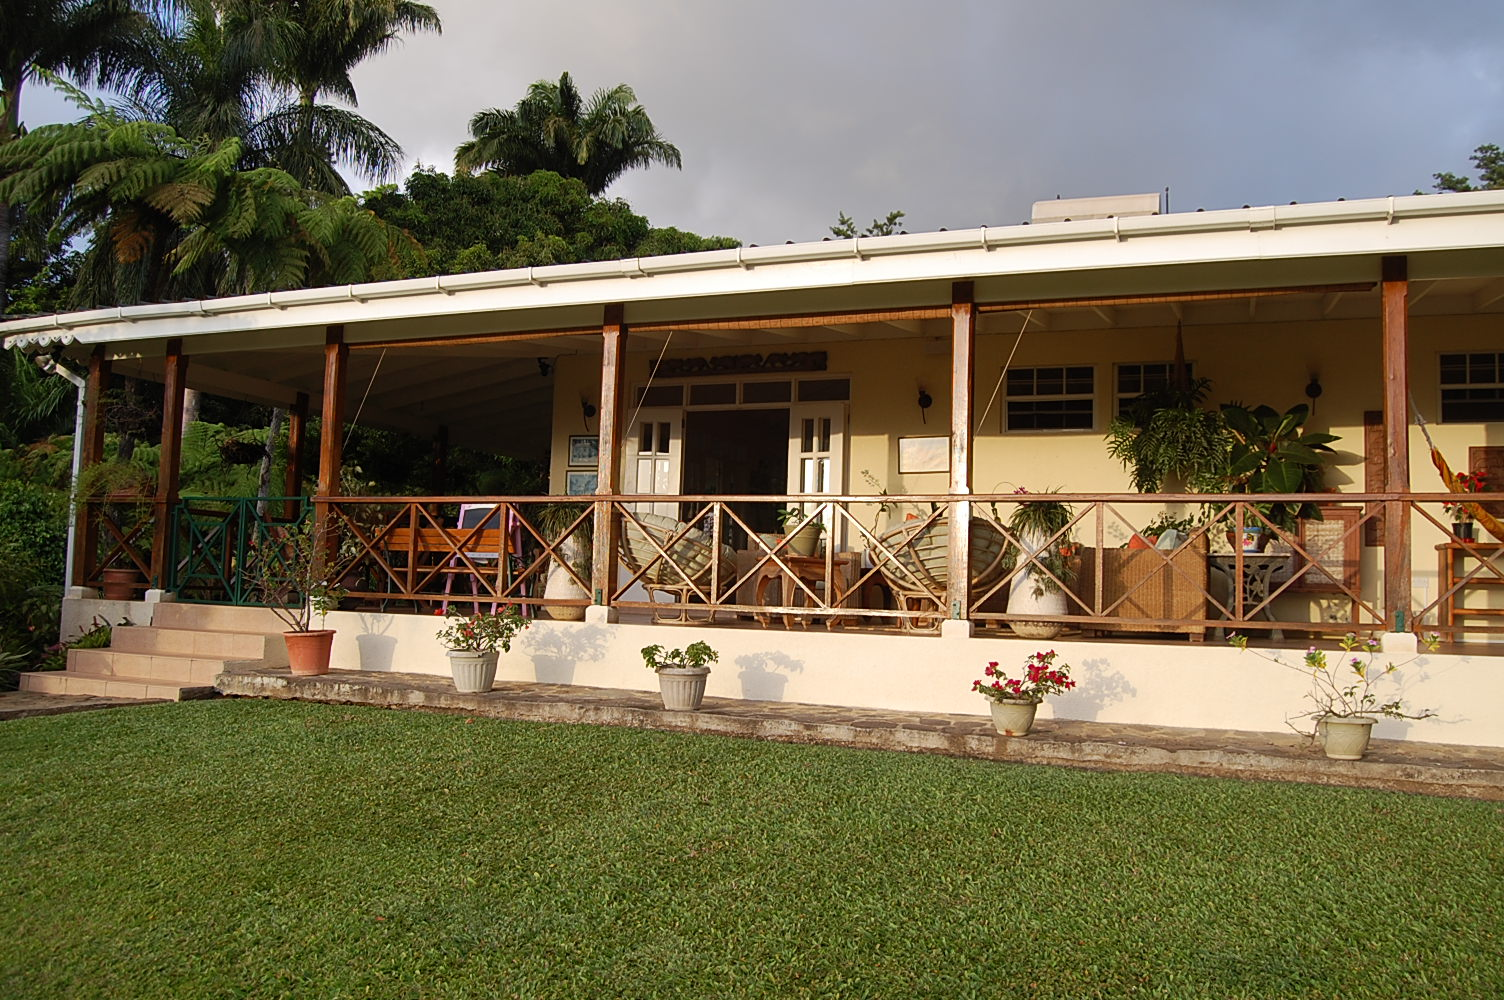 Dominica Real estate: House For Sale In Eggleston